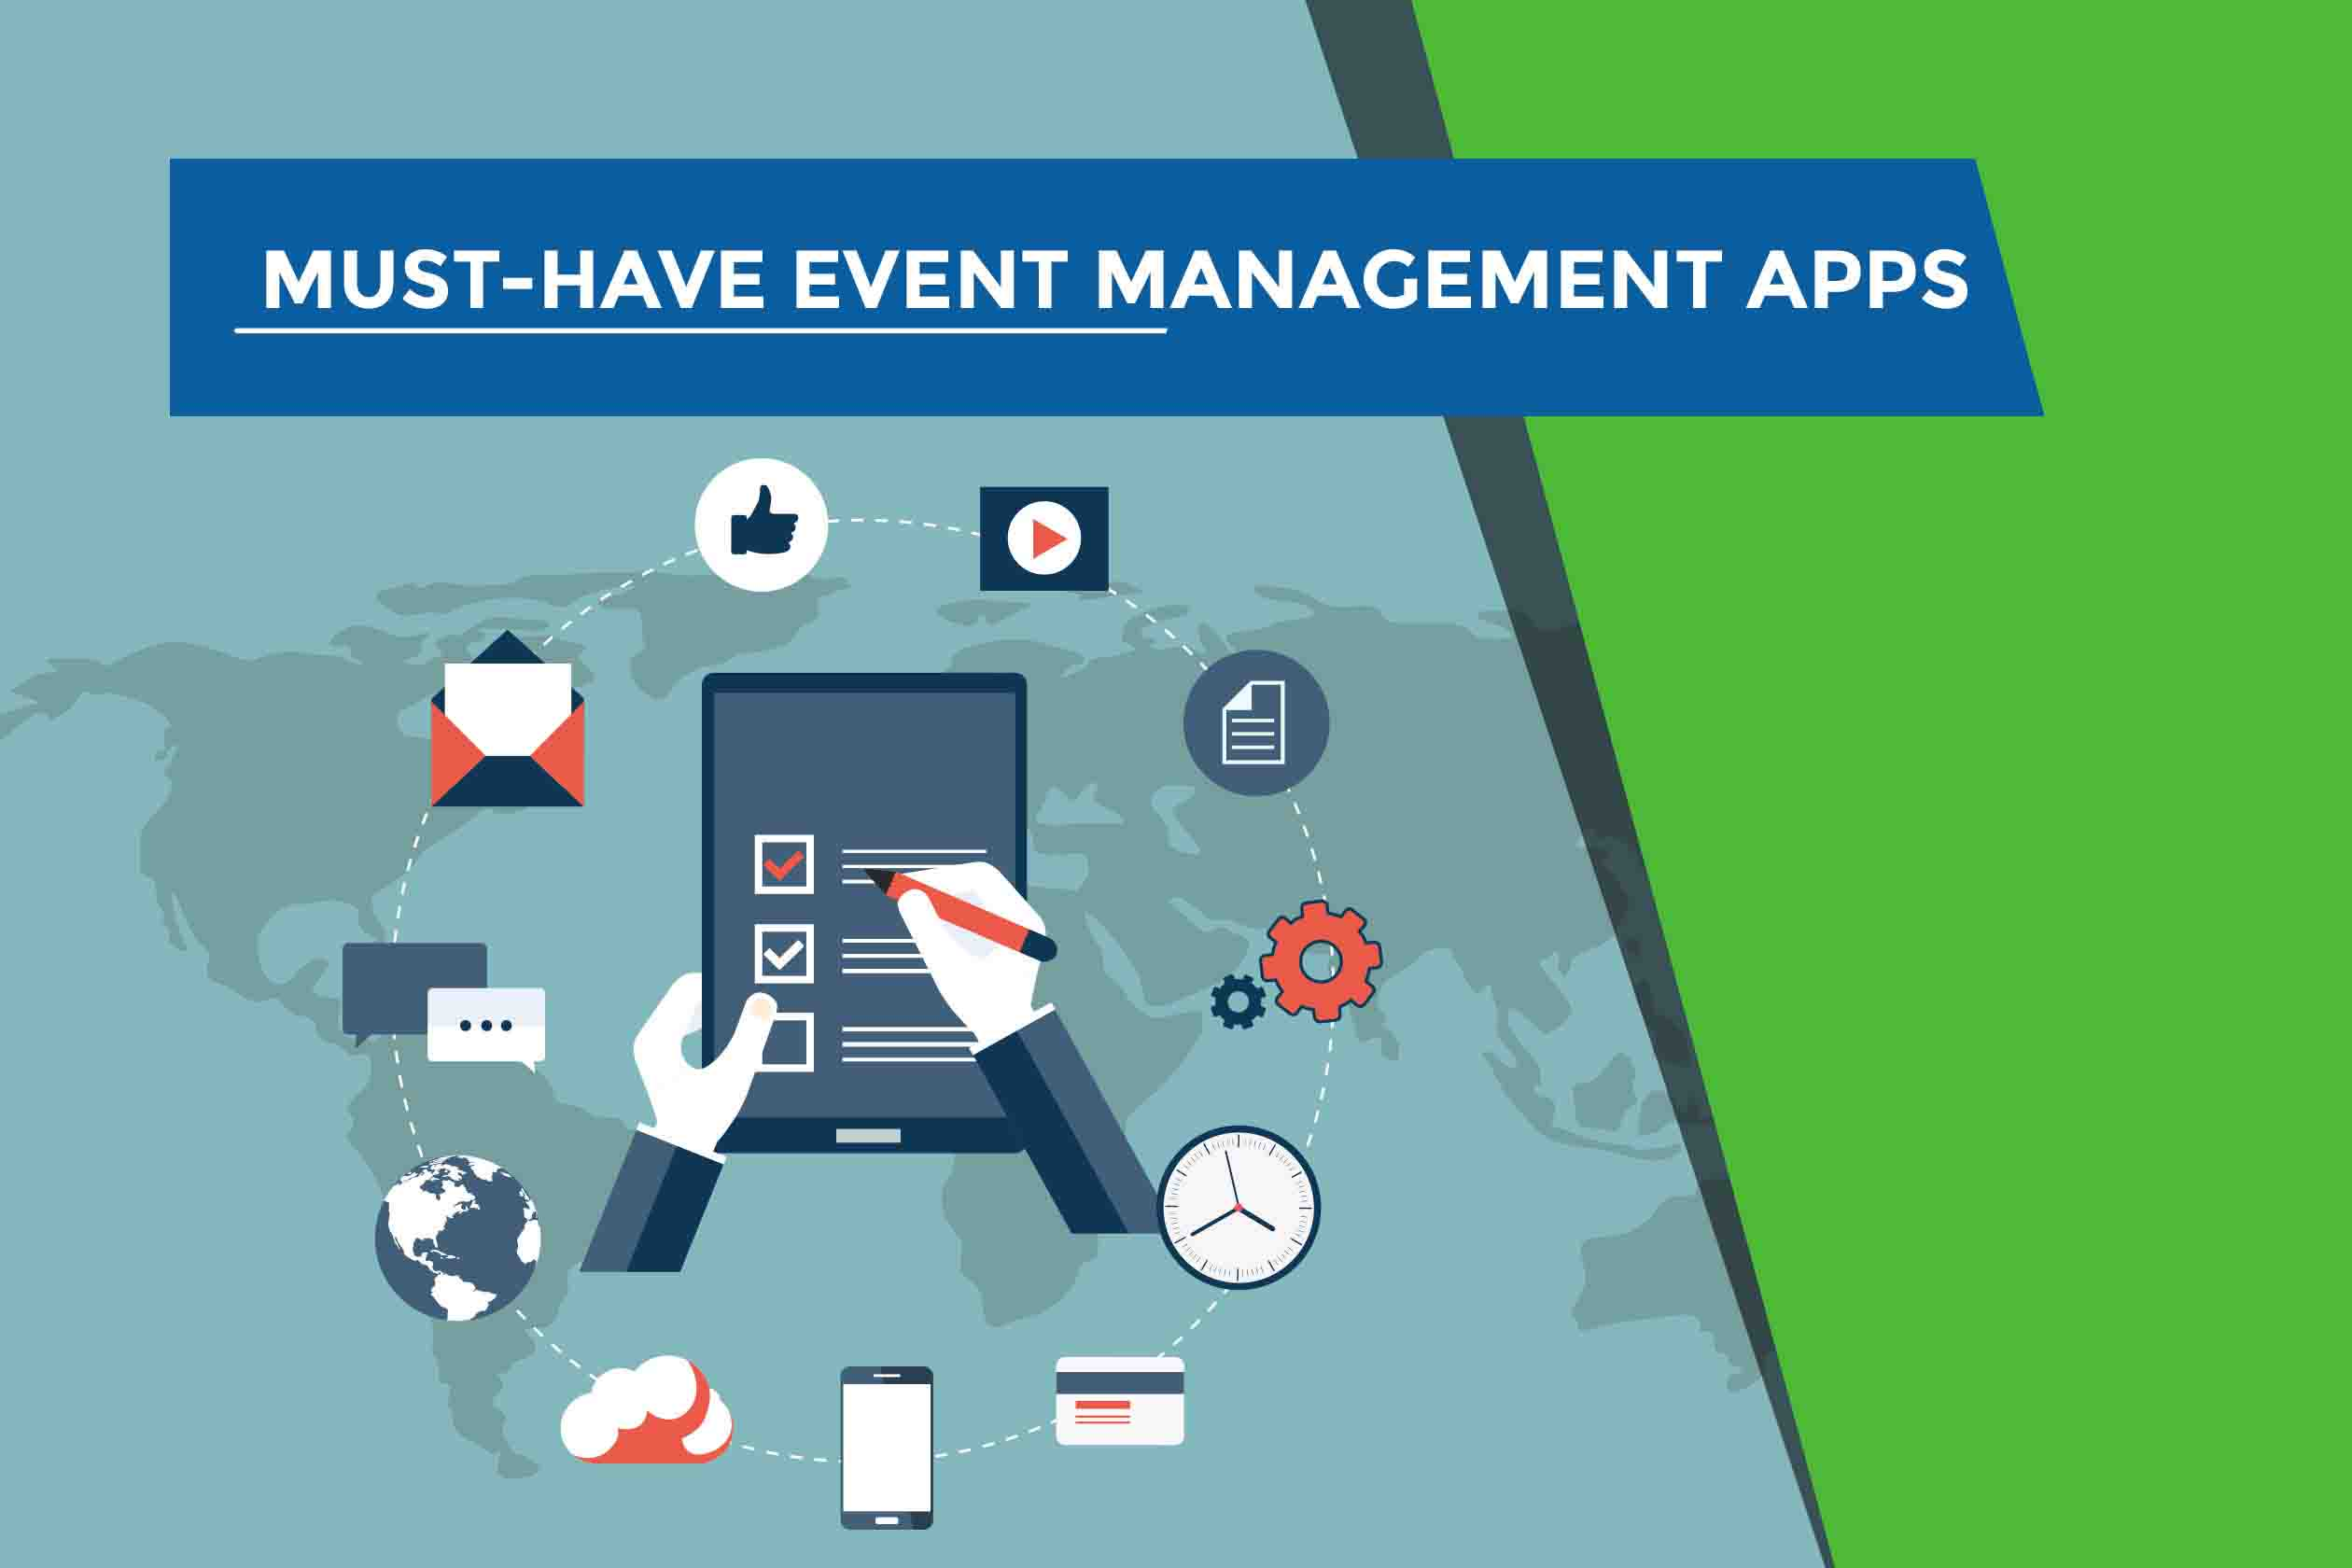 Must-Have Event Management Apps